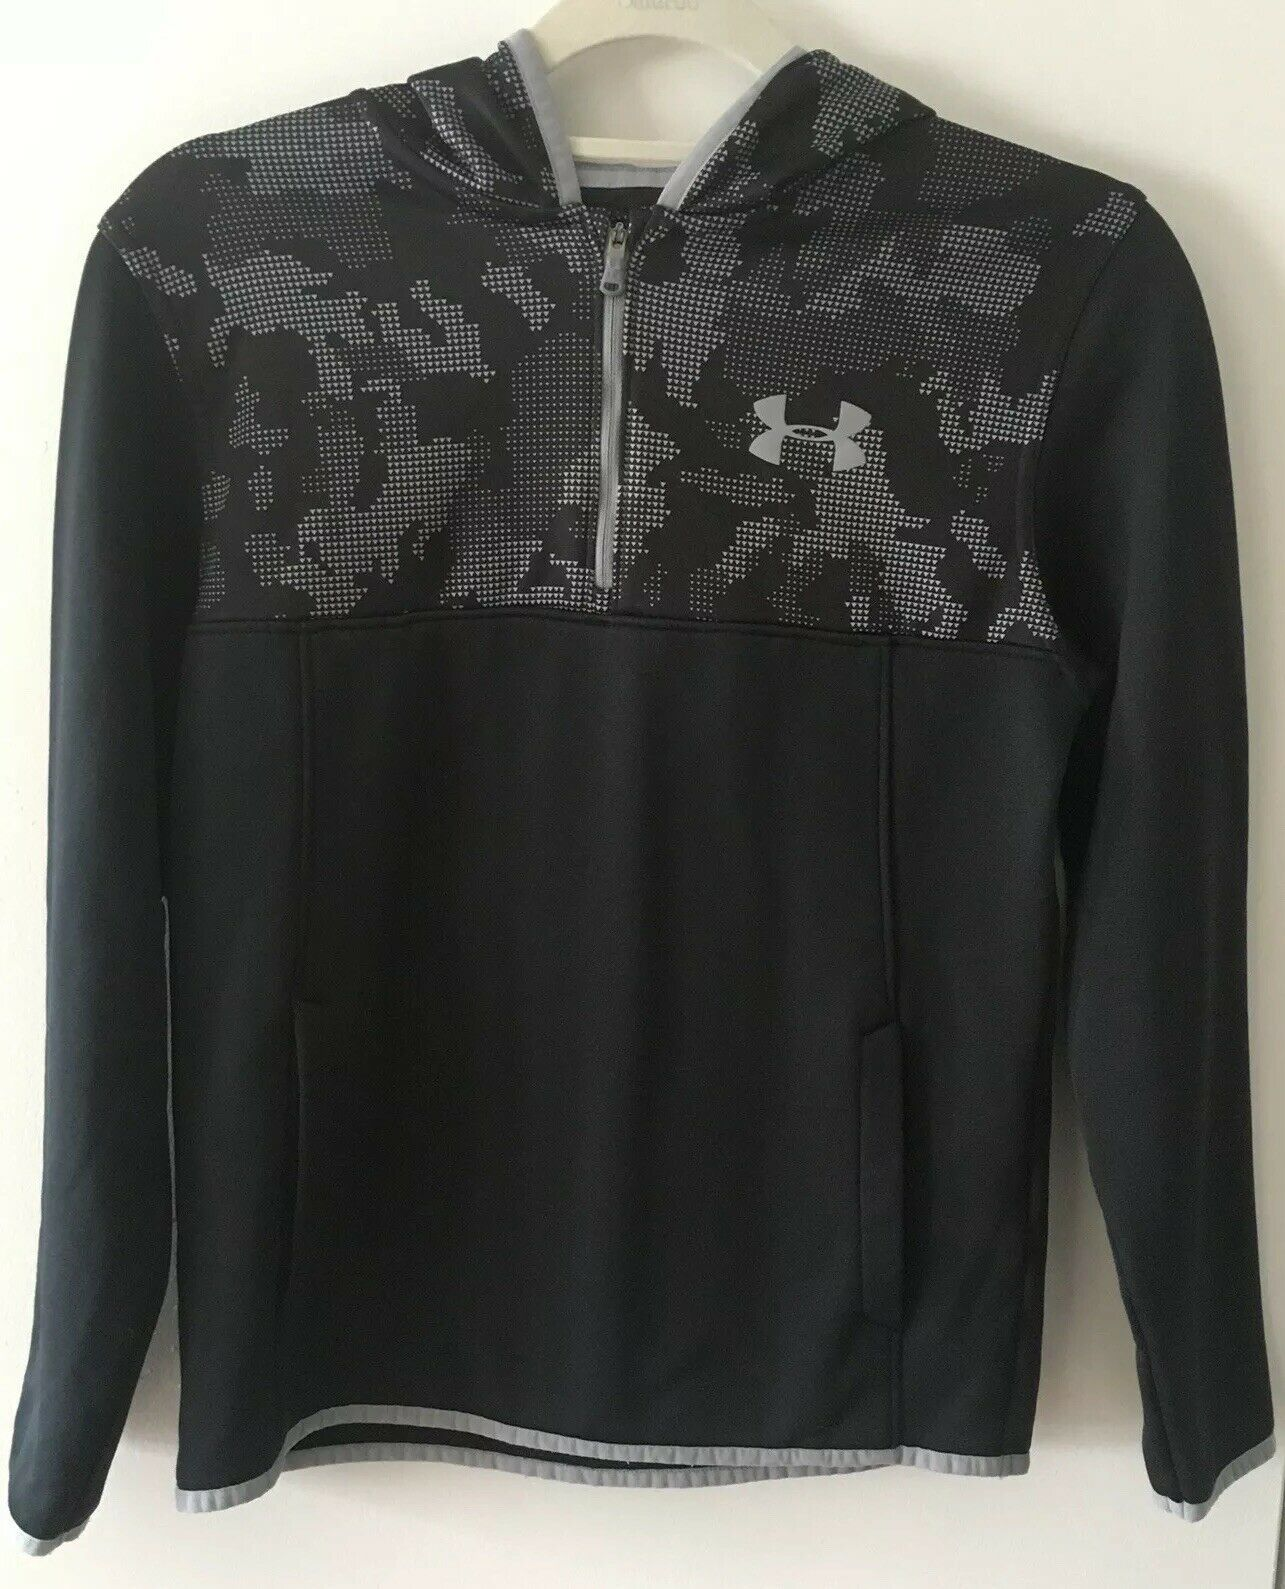 Primary image for Under Armour Coldgear Boys Hooded Sweatshirt Size Youth L